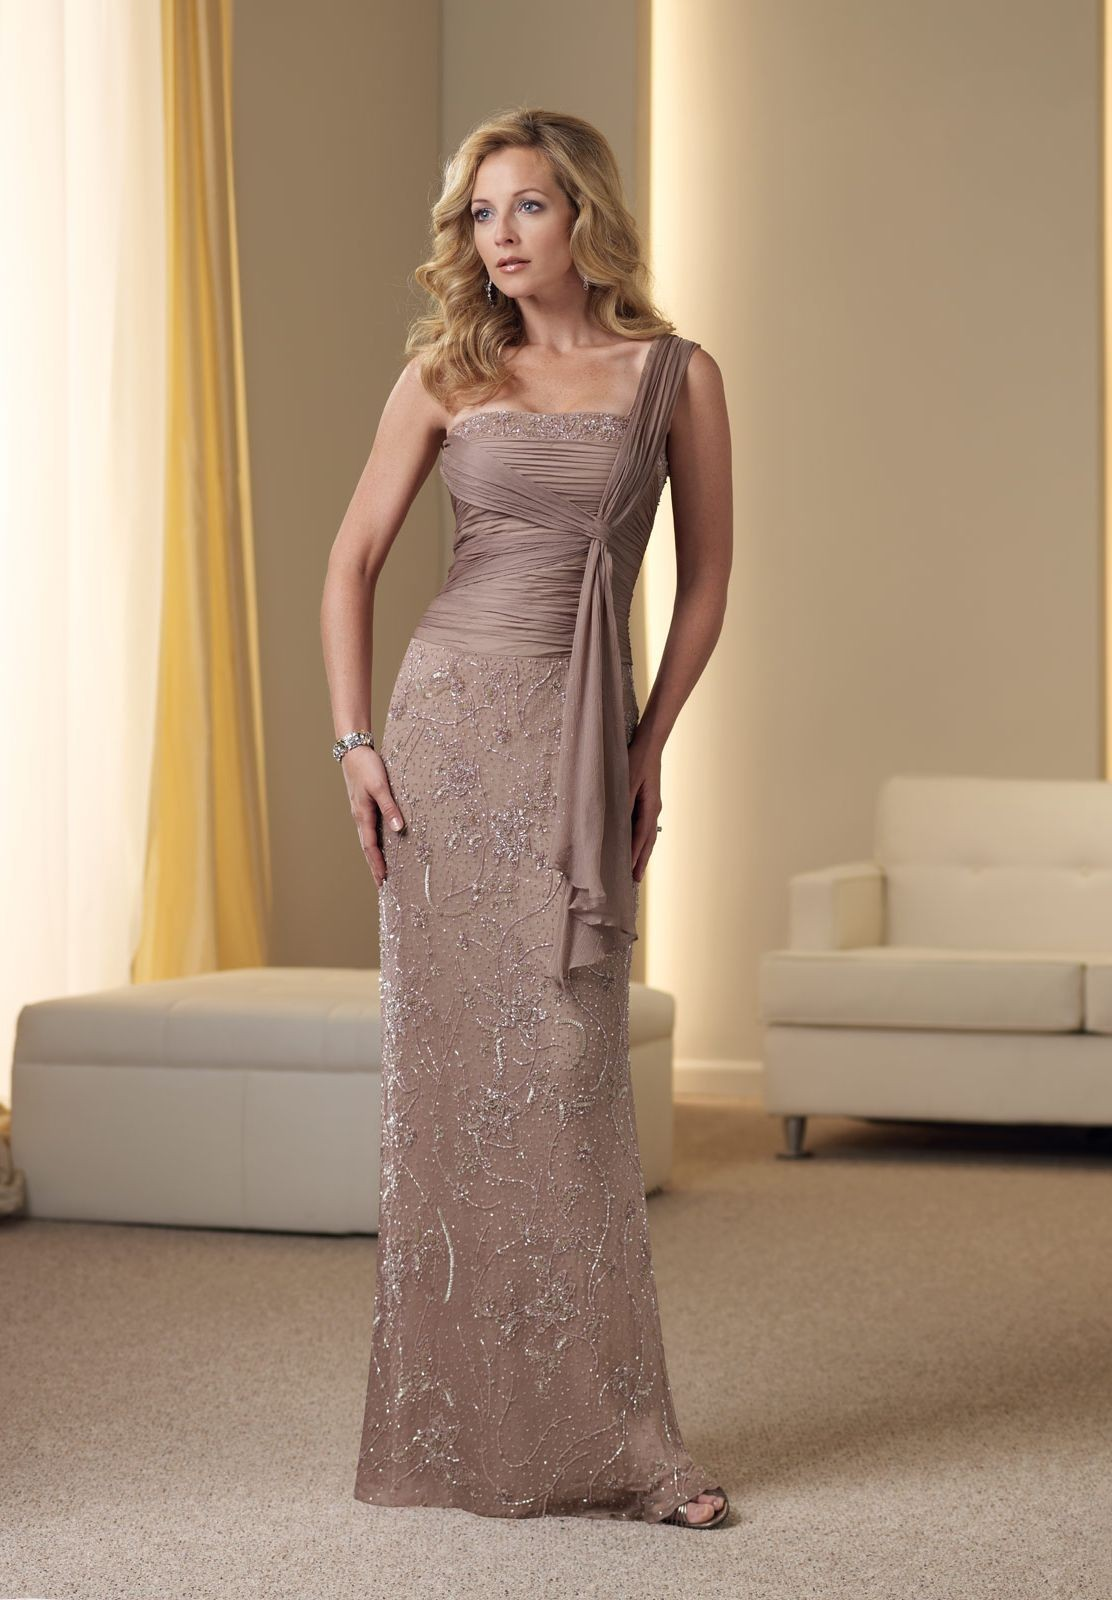 WhiteAzalea Mother of The Bride Dresses: March 2012 | Fashion Gallery